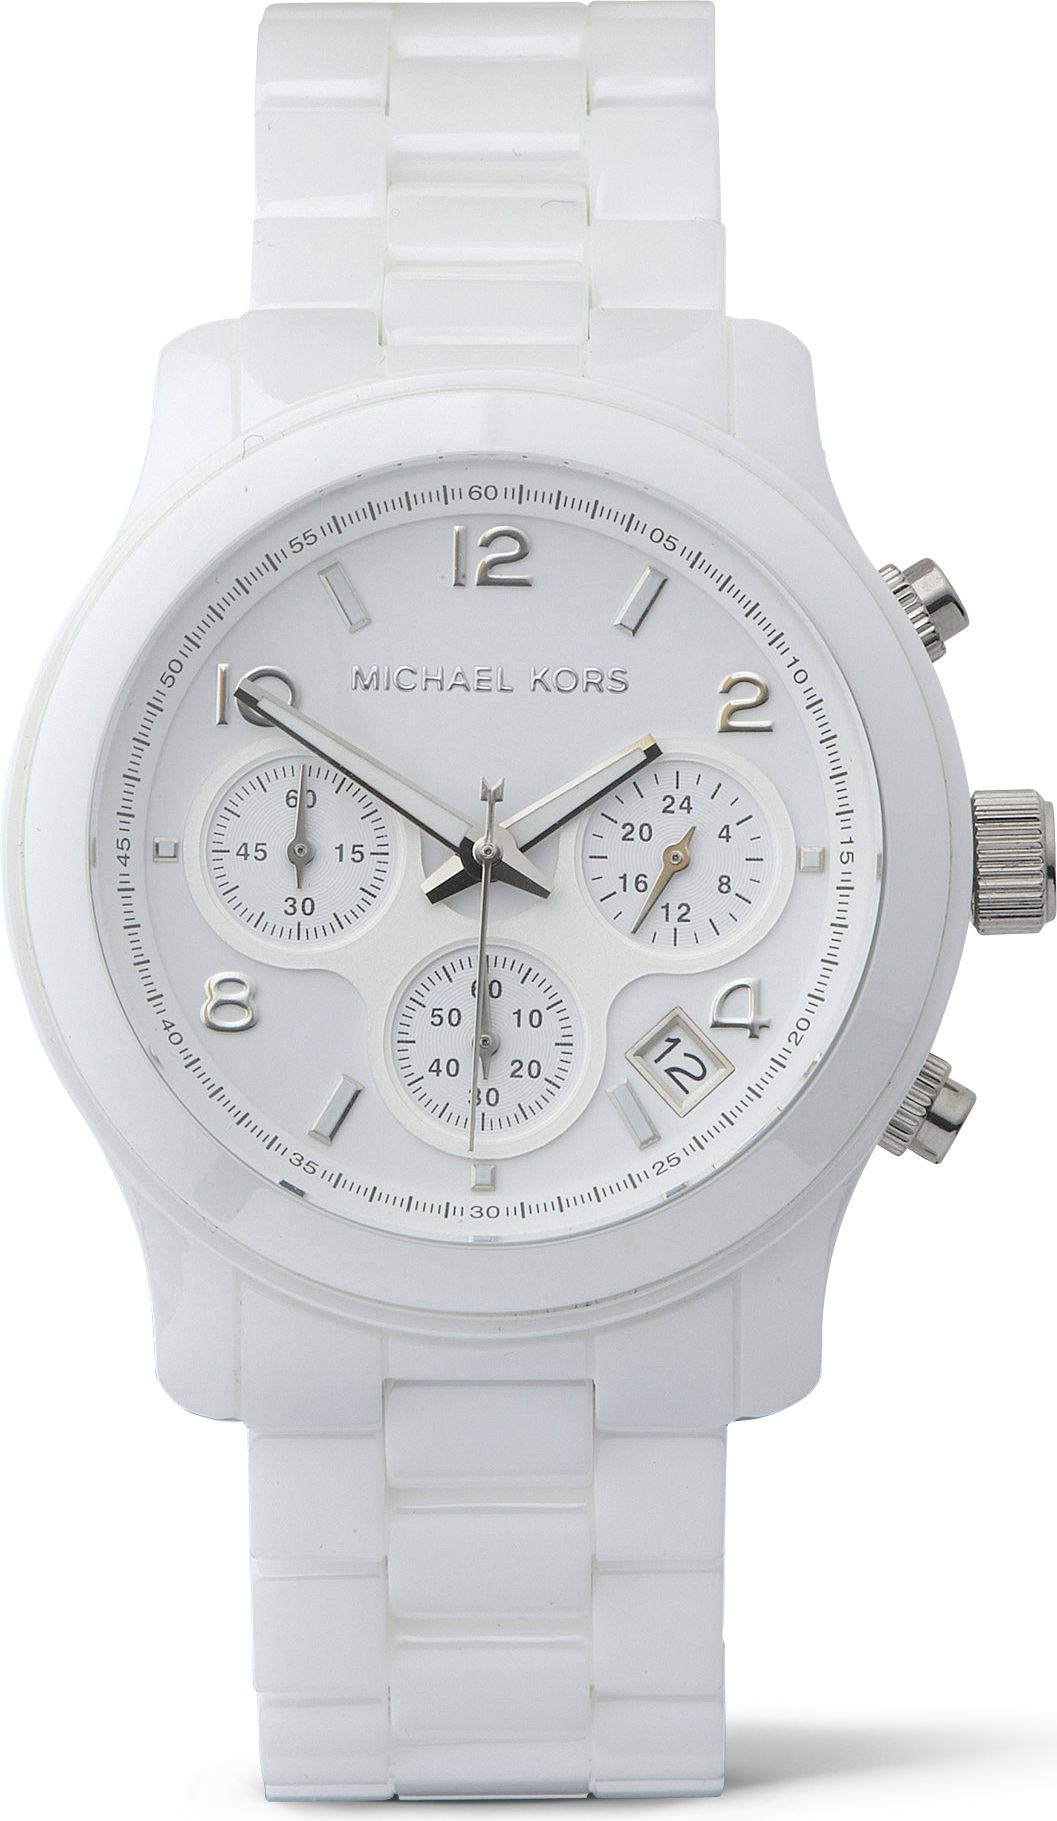 Michael kors ceramic chronograph watch in white lyst for Watches michael kors